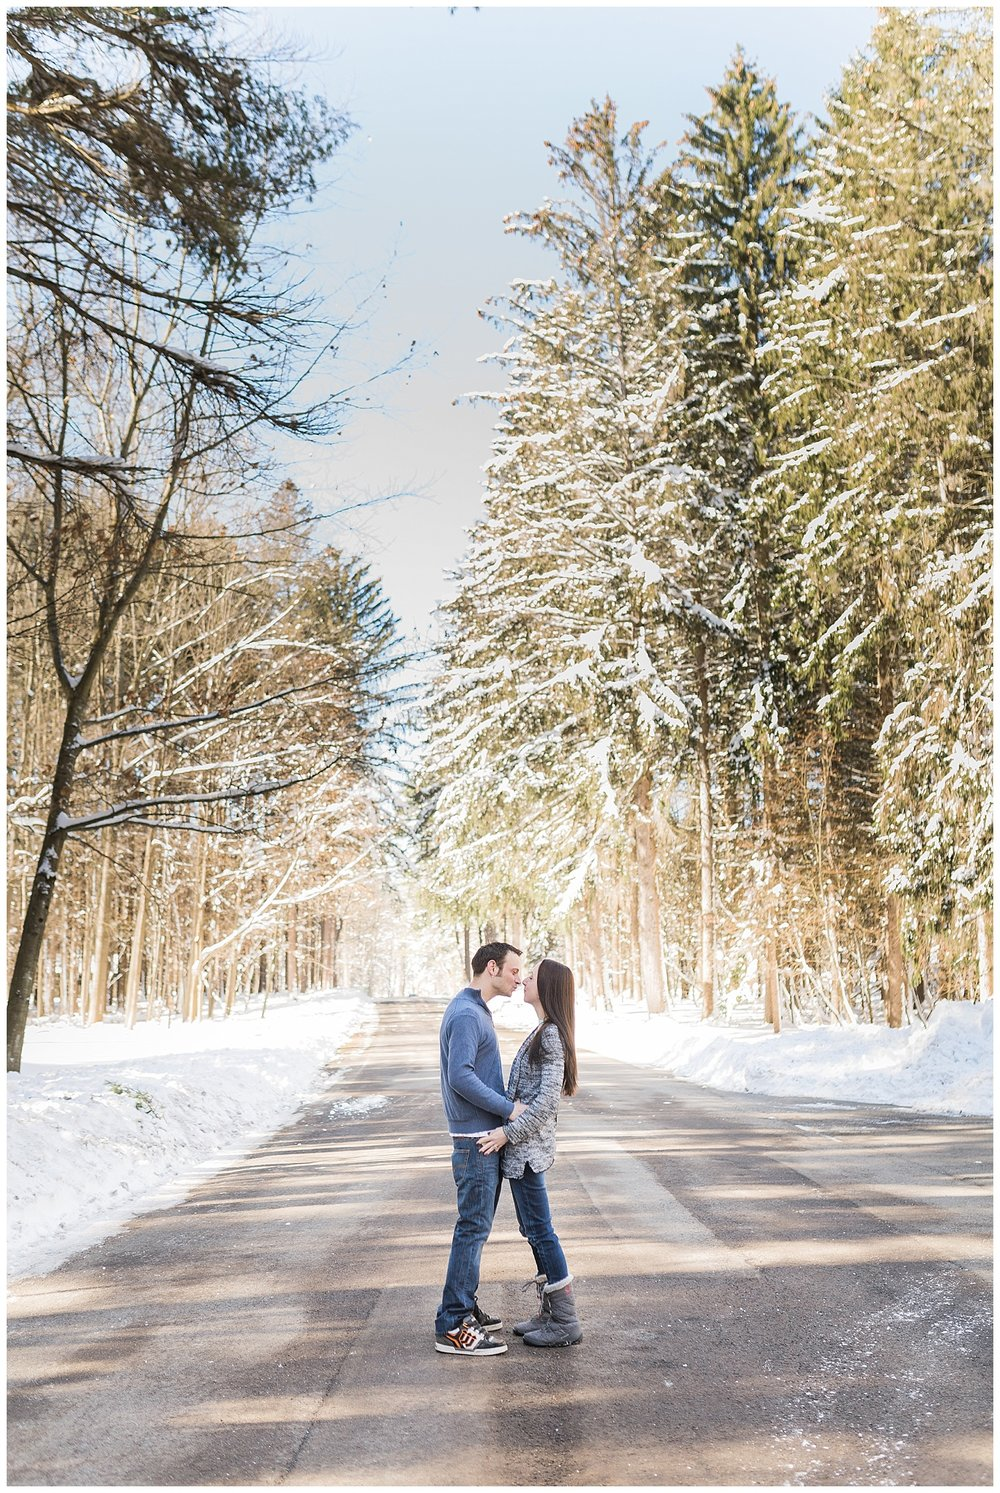 Matt and Jessica - Winter in Letchworth -2_Buffalo wedding photography.jpg